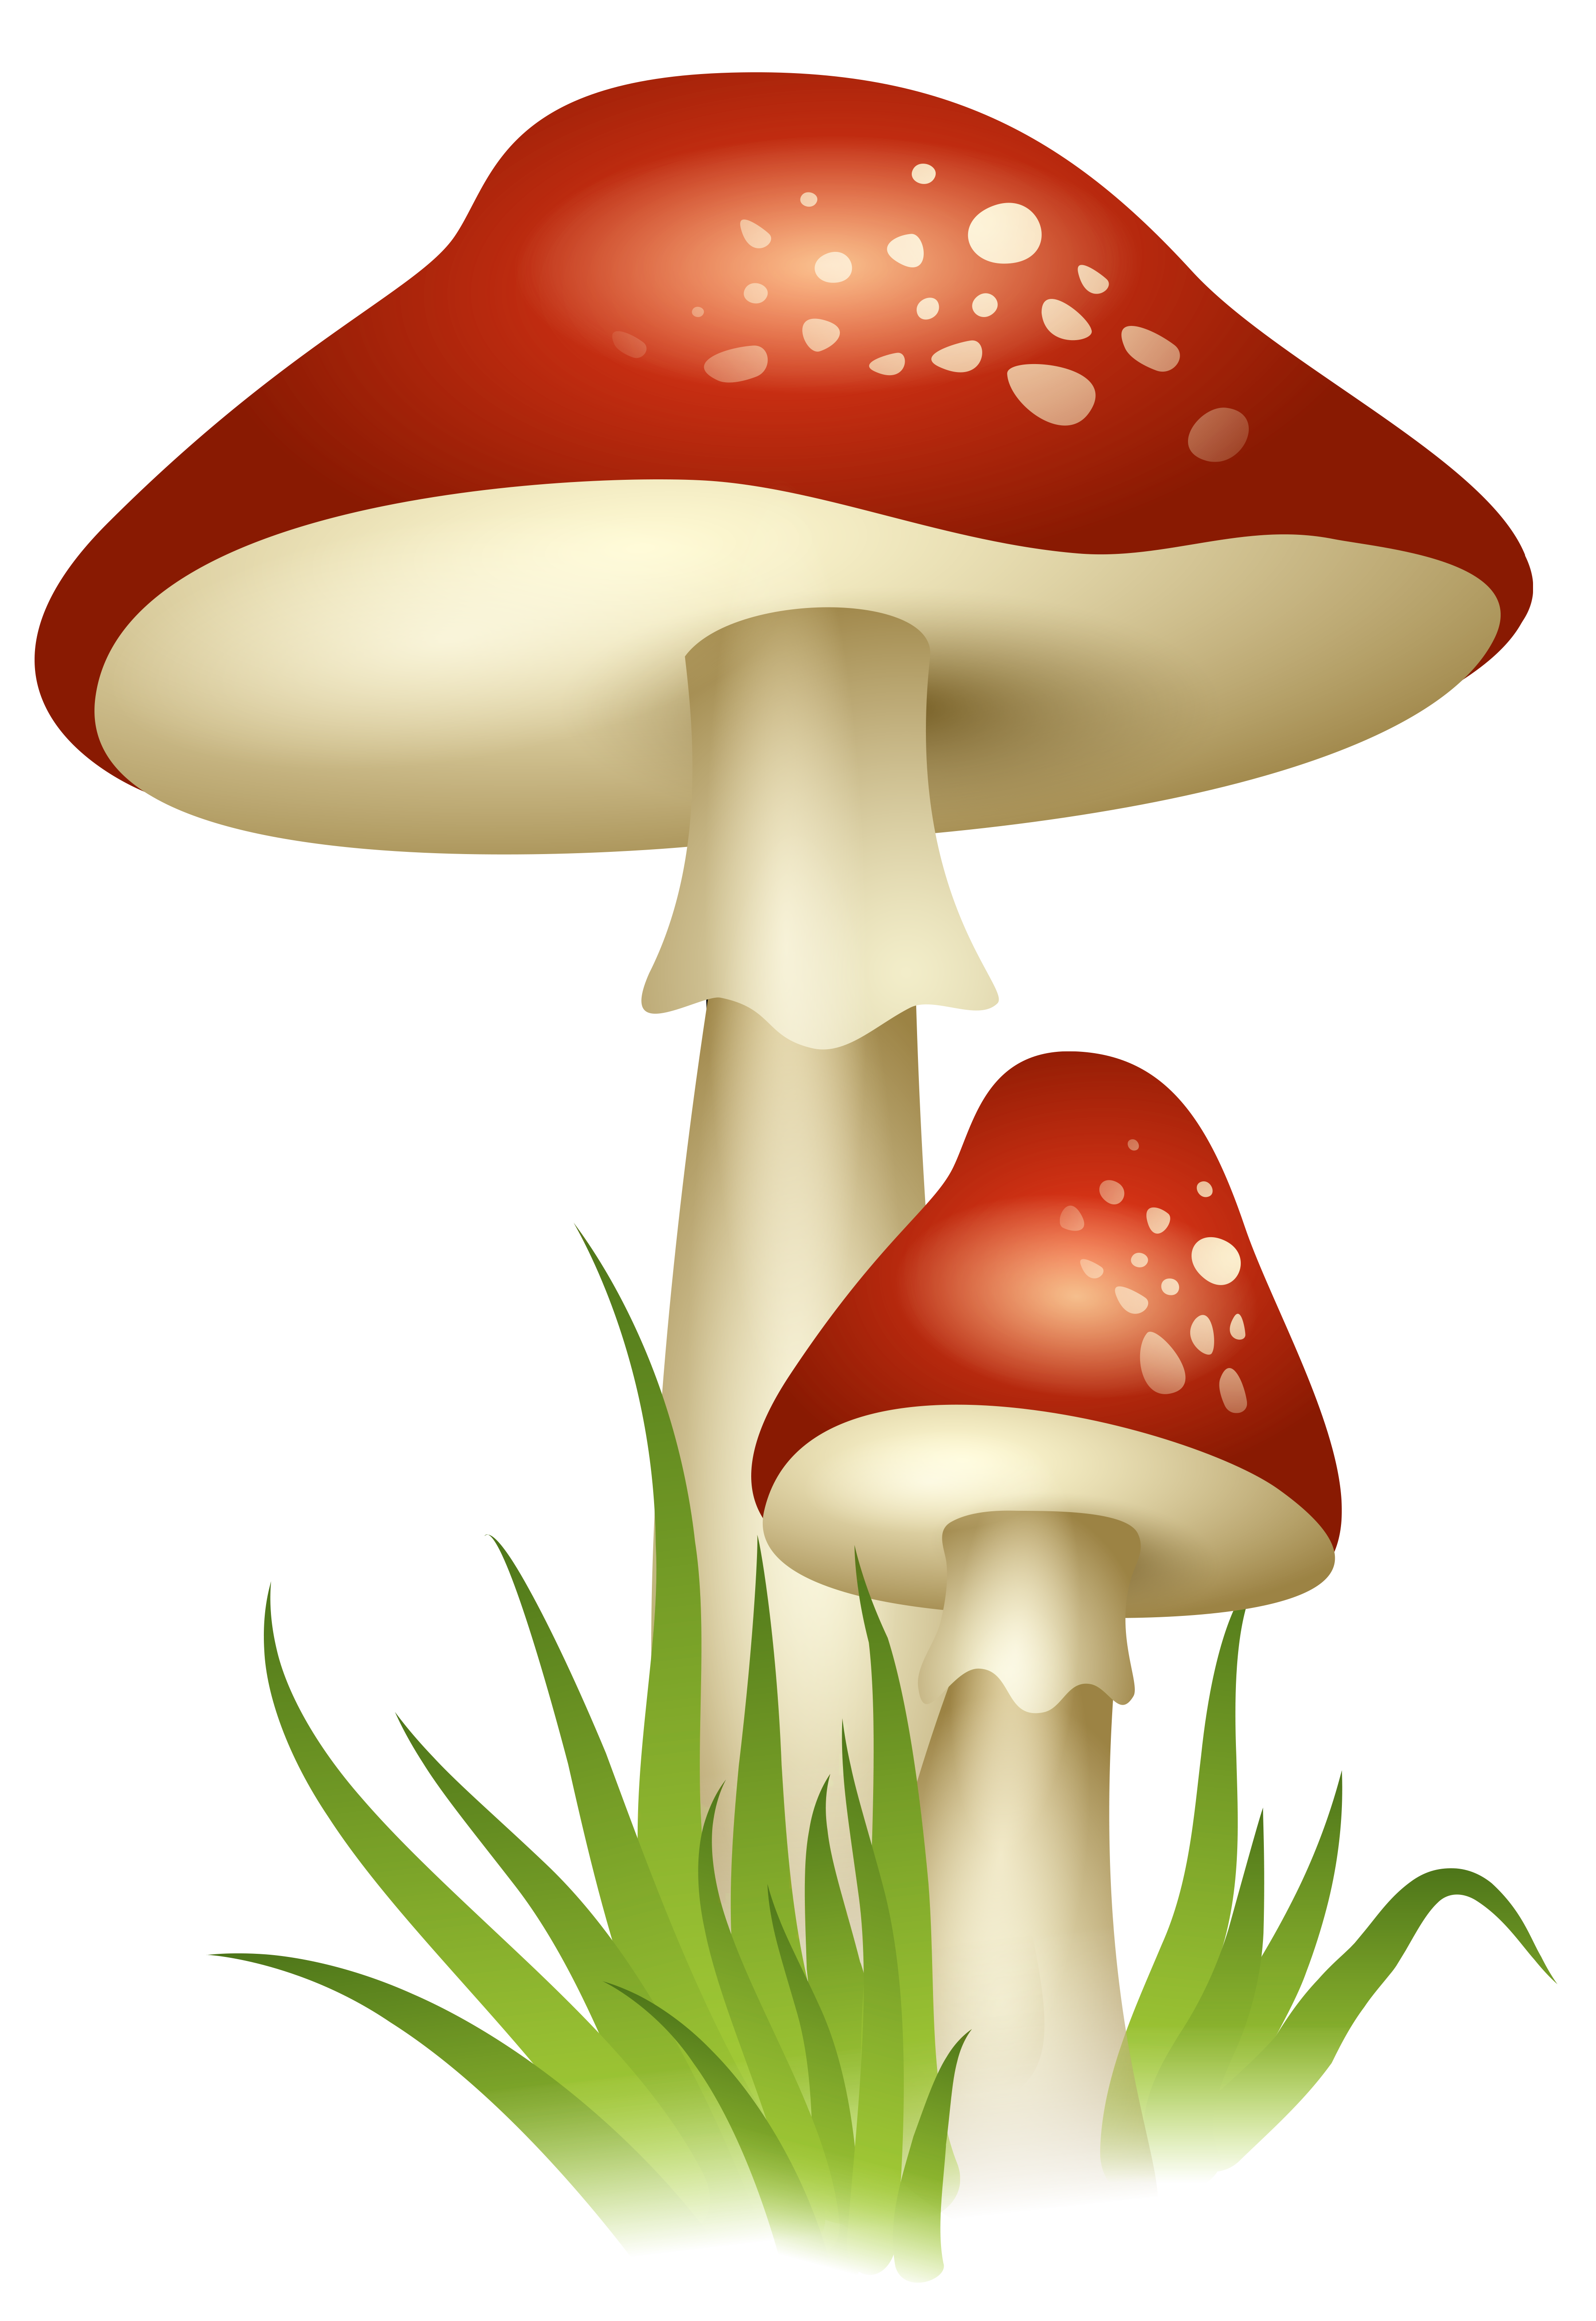 Red mushroom png. Mushrooms transparent picture gallery